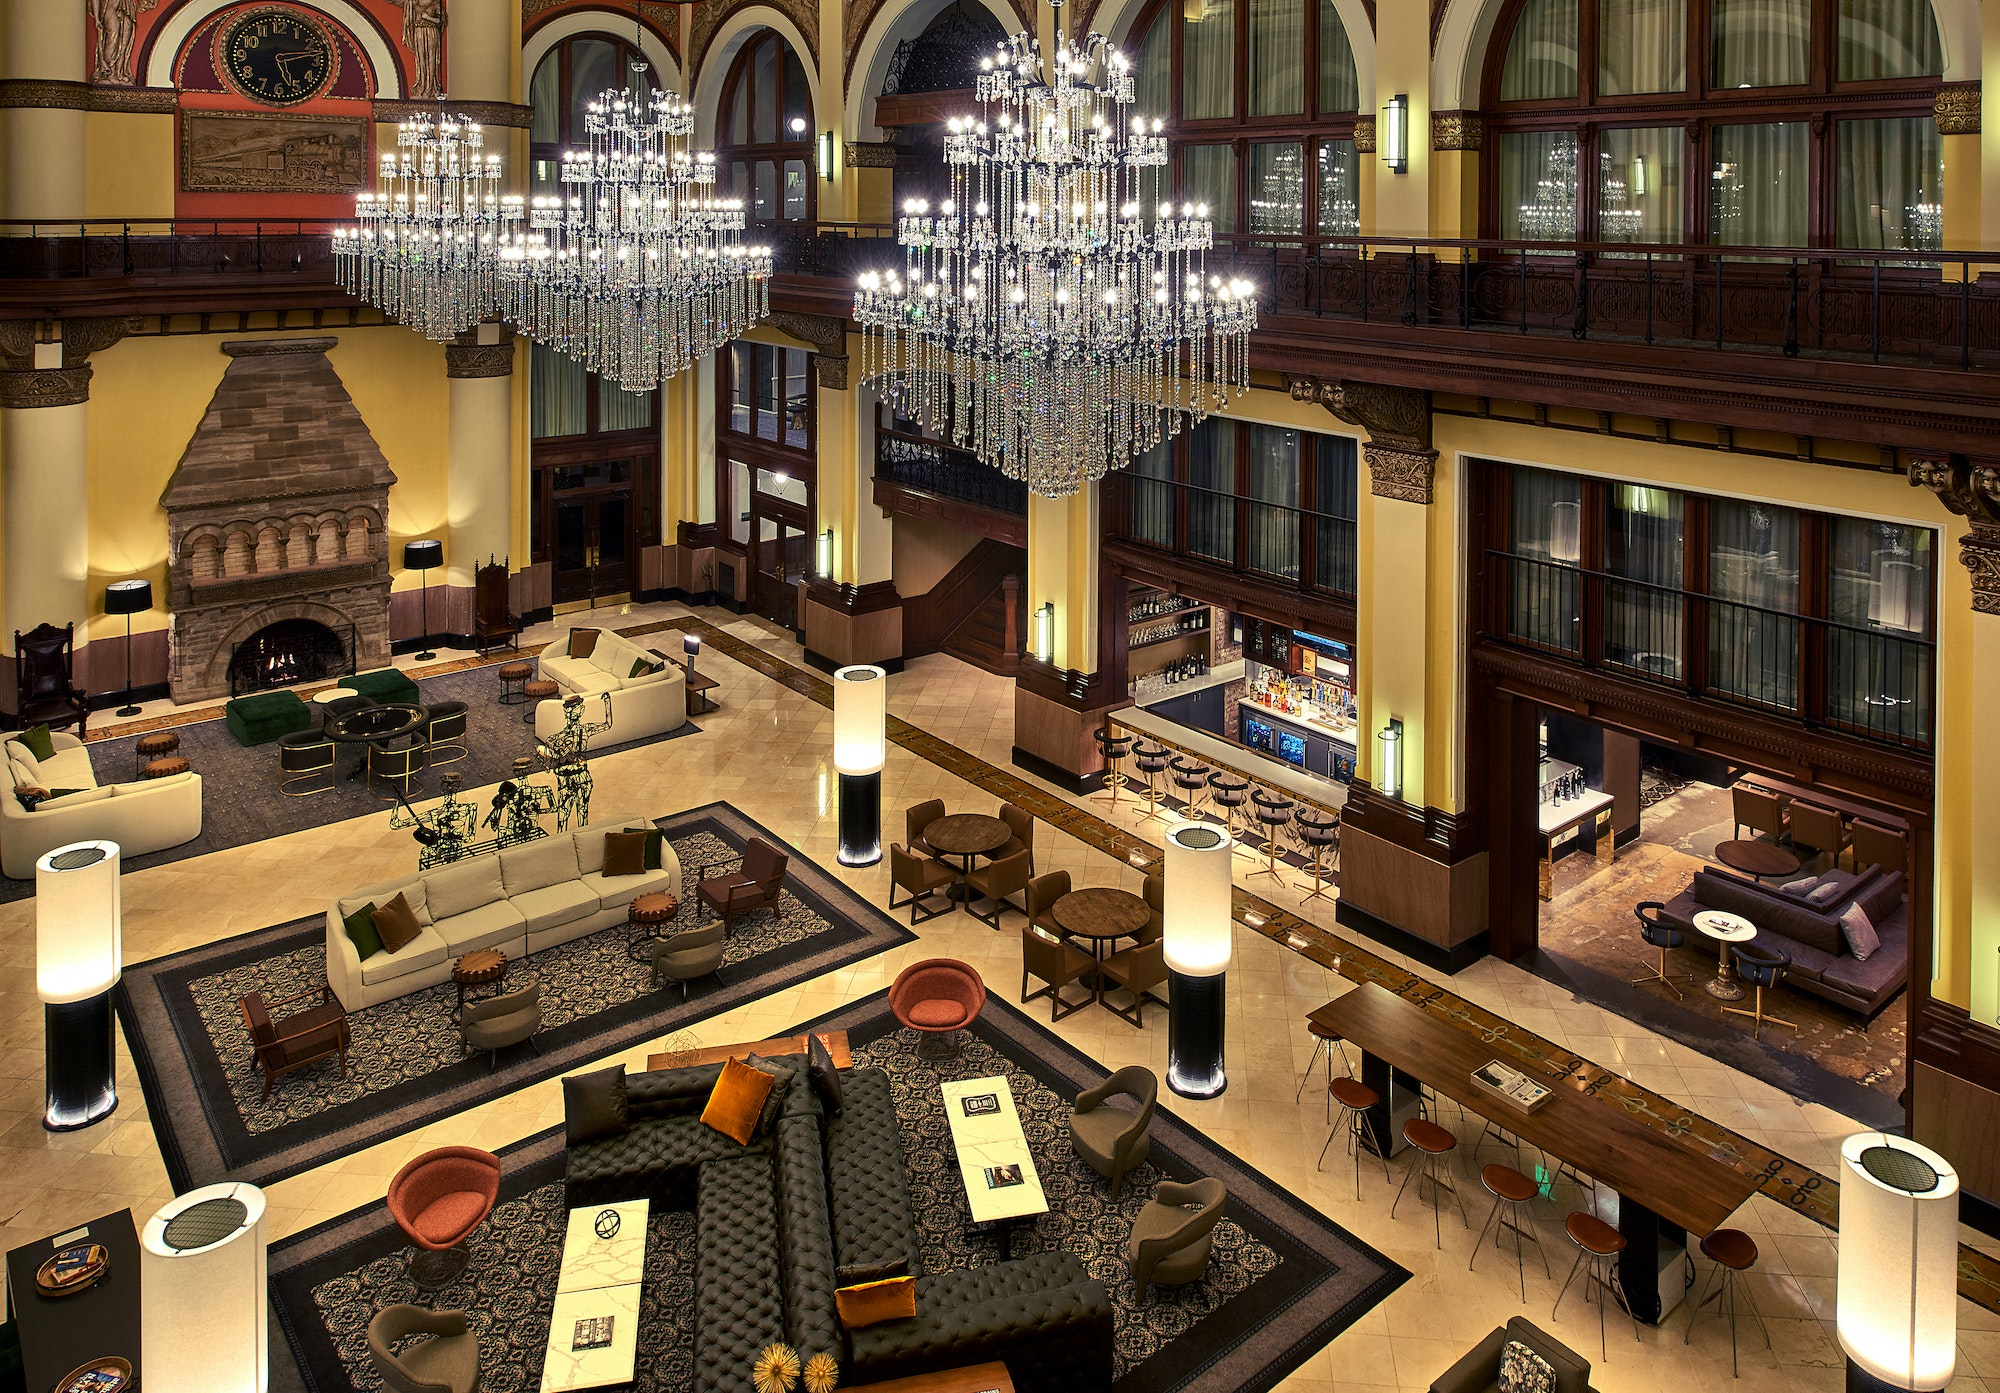 The lobby of Nashville's Union Station Hotel includes references to the historic Tennessee train station.